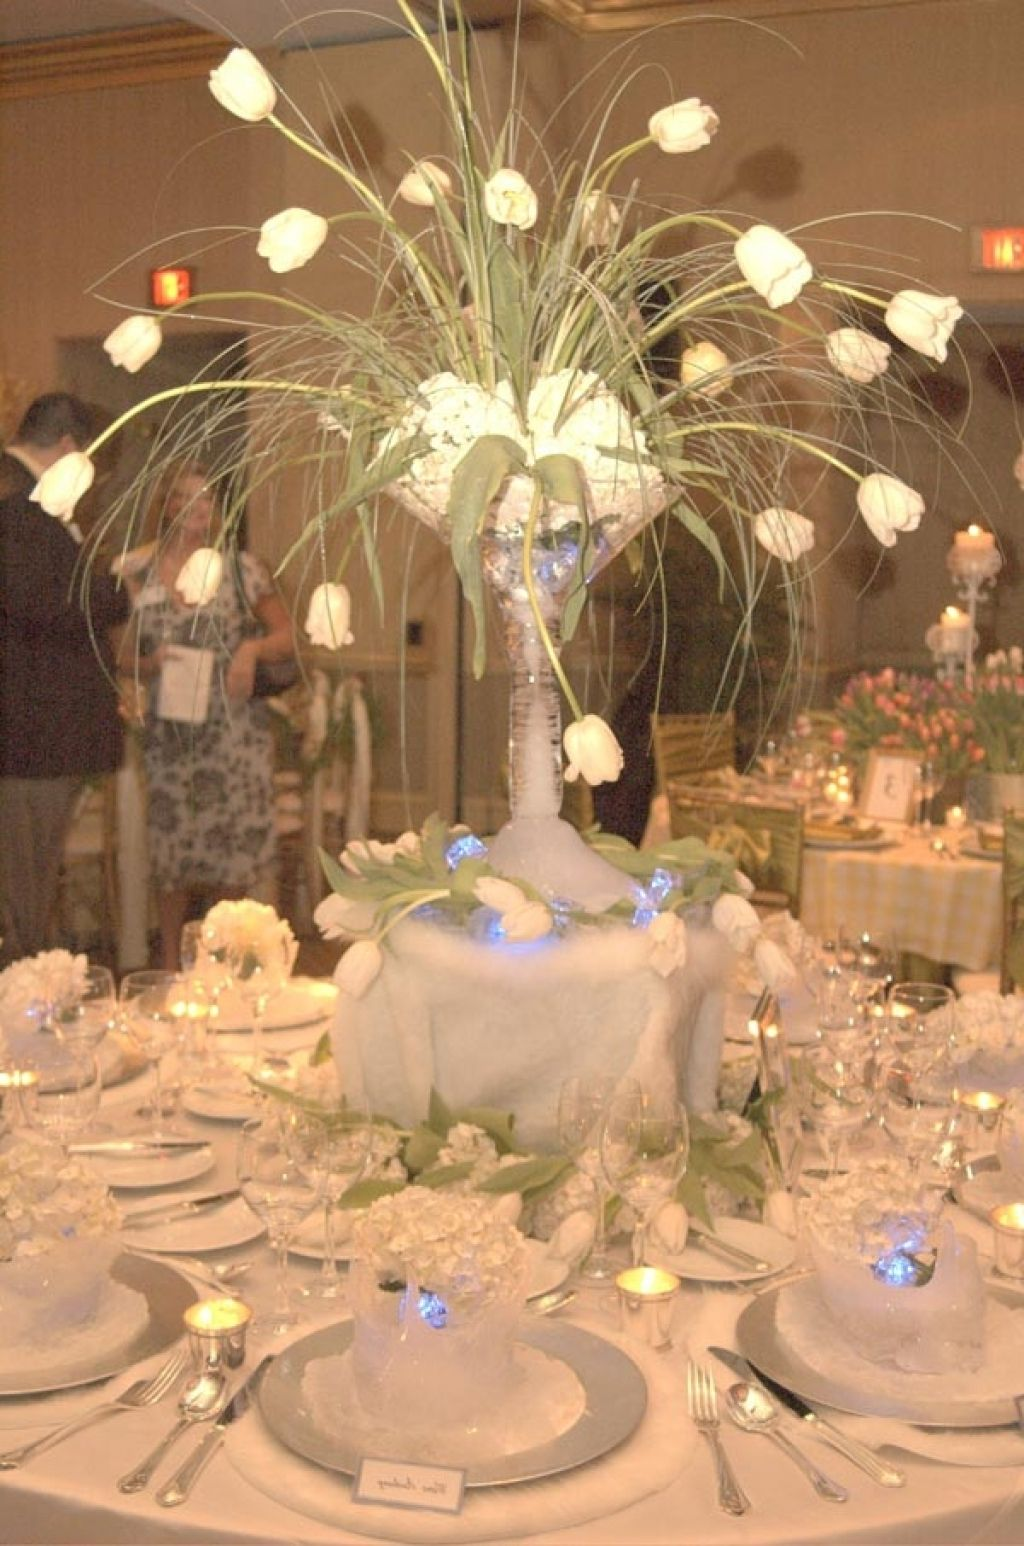 Simple wedding table centerpieces ideas